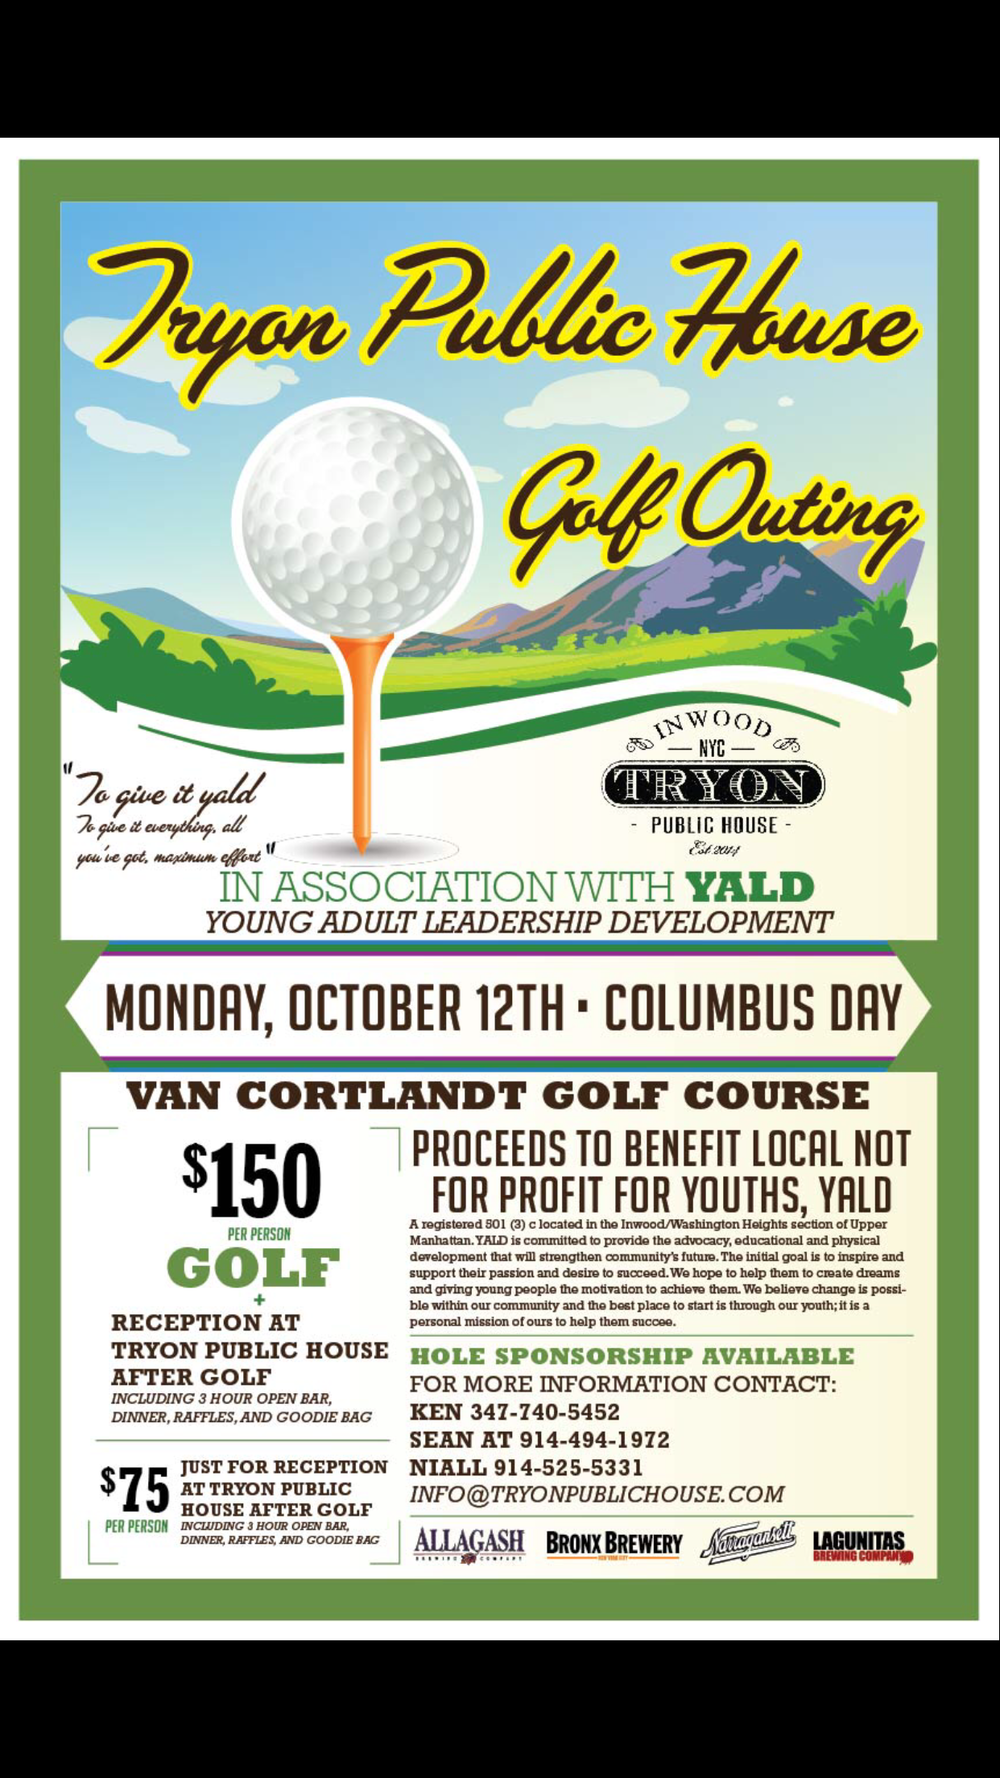 JOIN US FOR OUR GOLF OUTING! CALL NIAL AT 914-525-5331 or EMAIL US info@tryonpublichouse.com